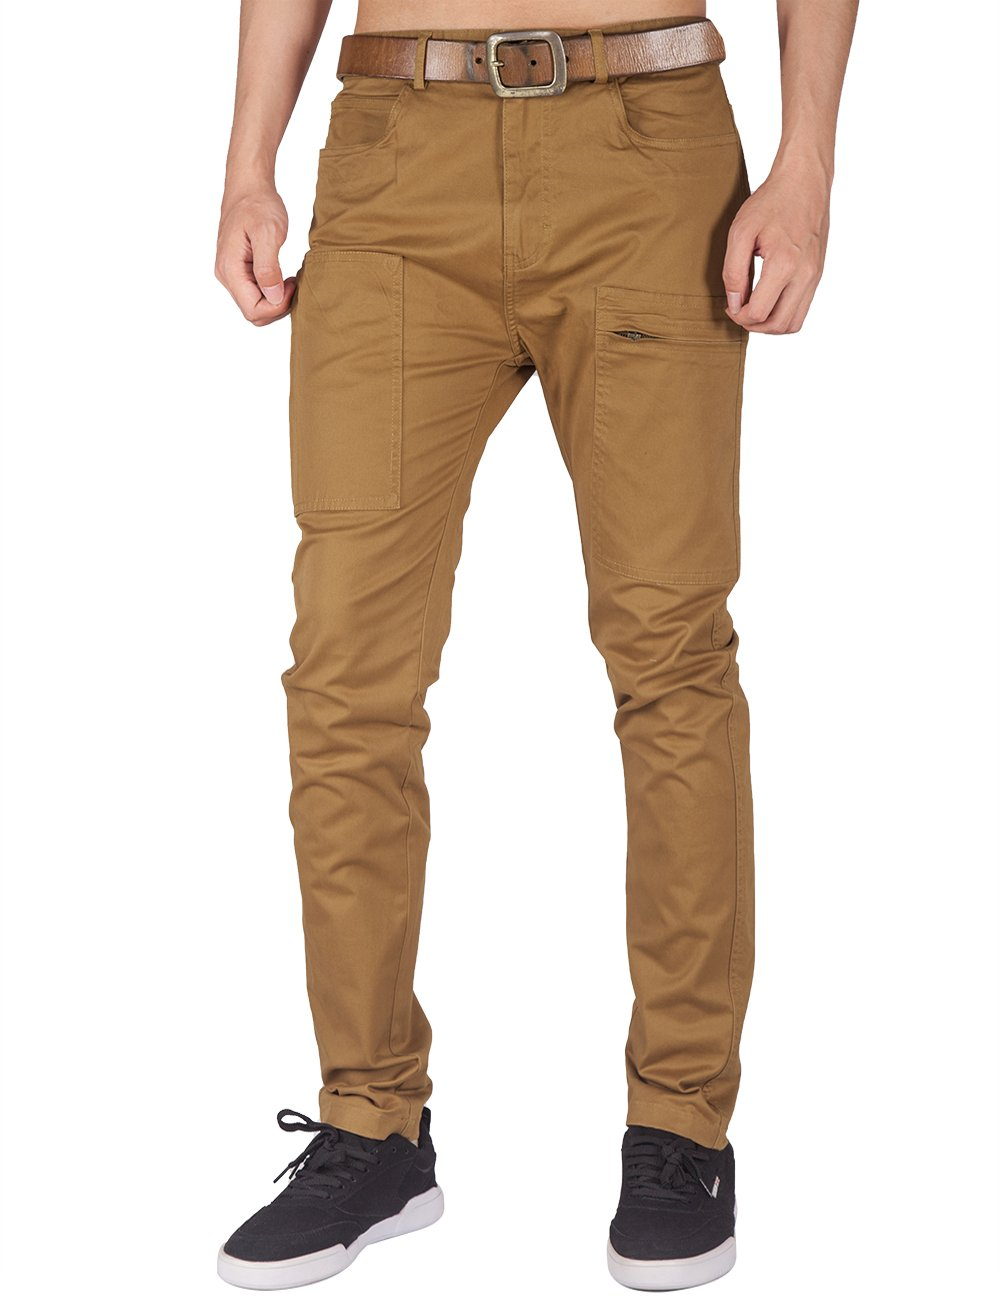 ITALY MORN Men's Flat Front Chino Pant Multi Pockets (Brown, L)